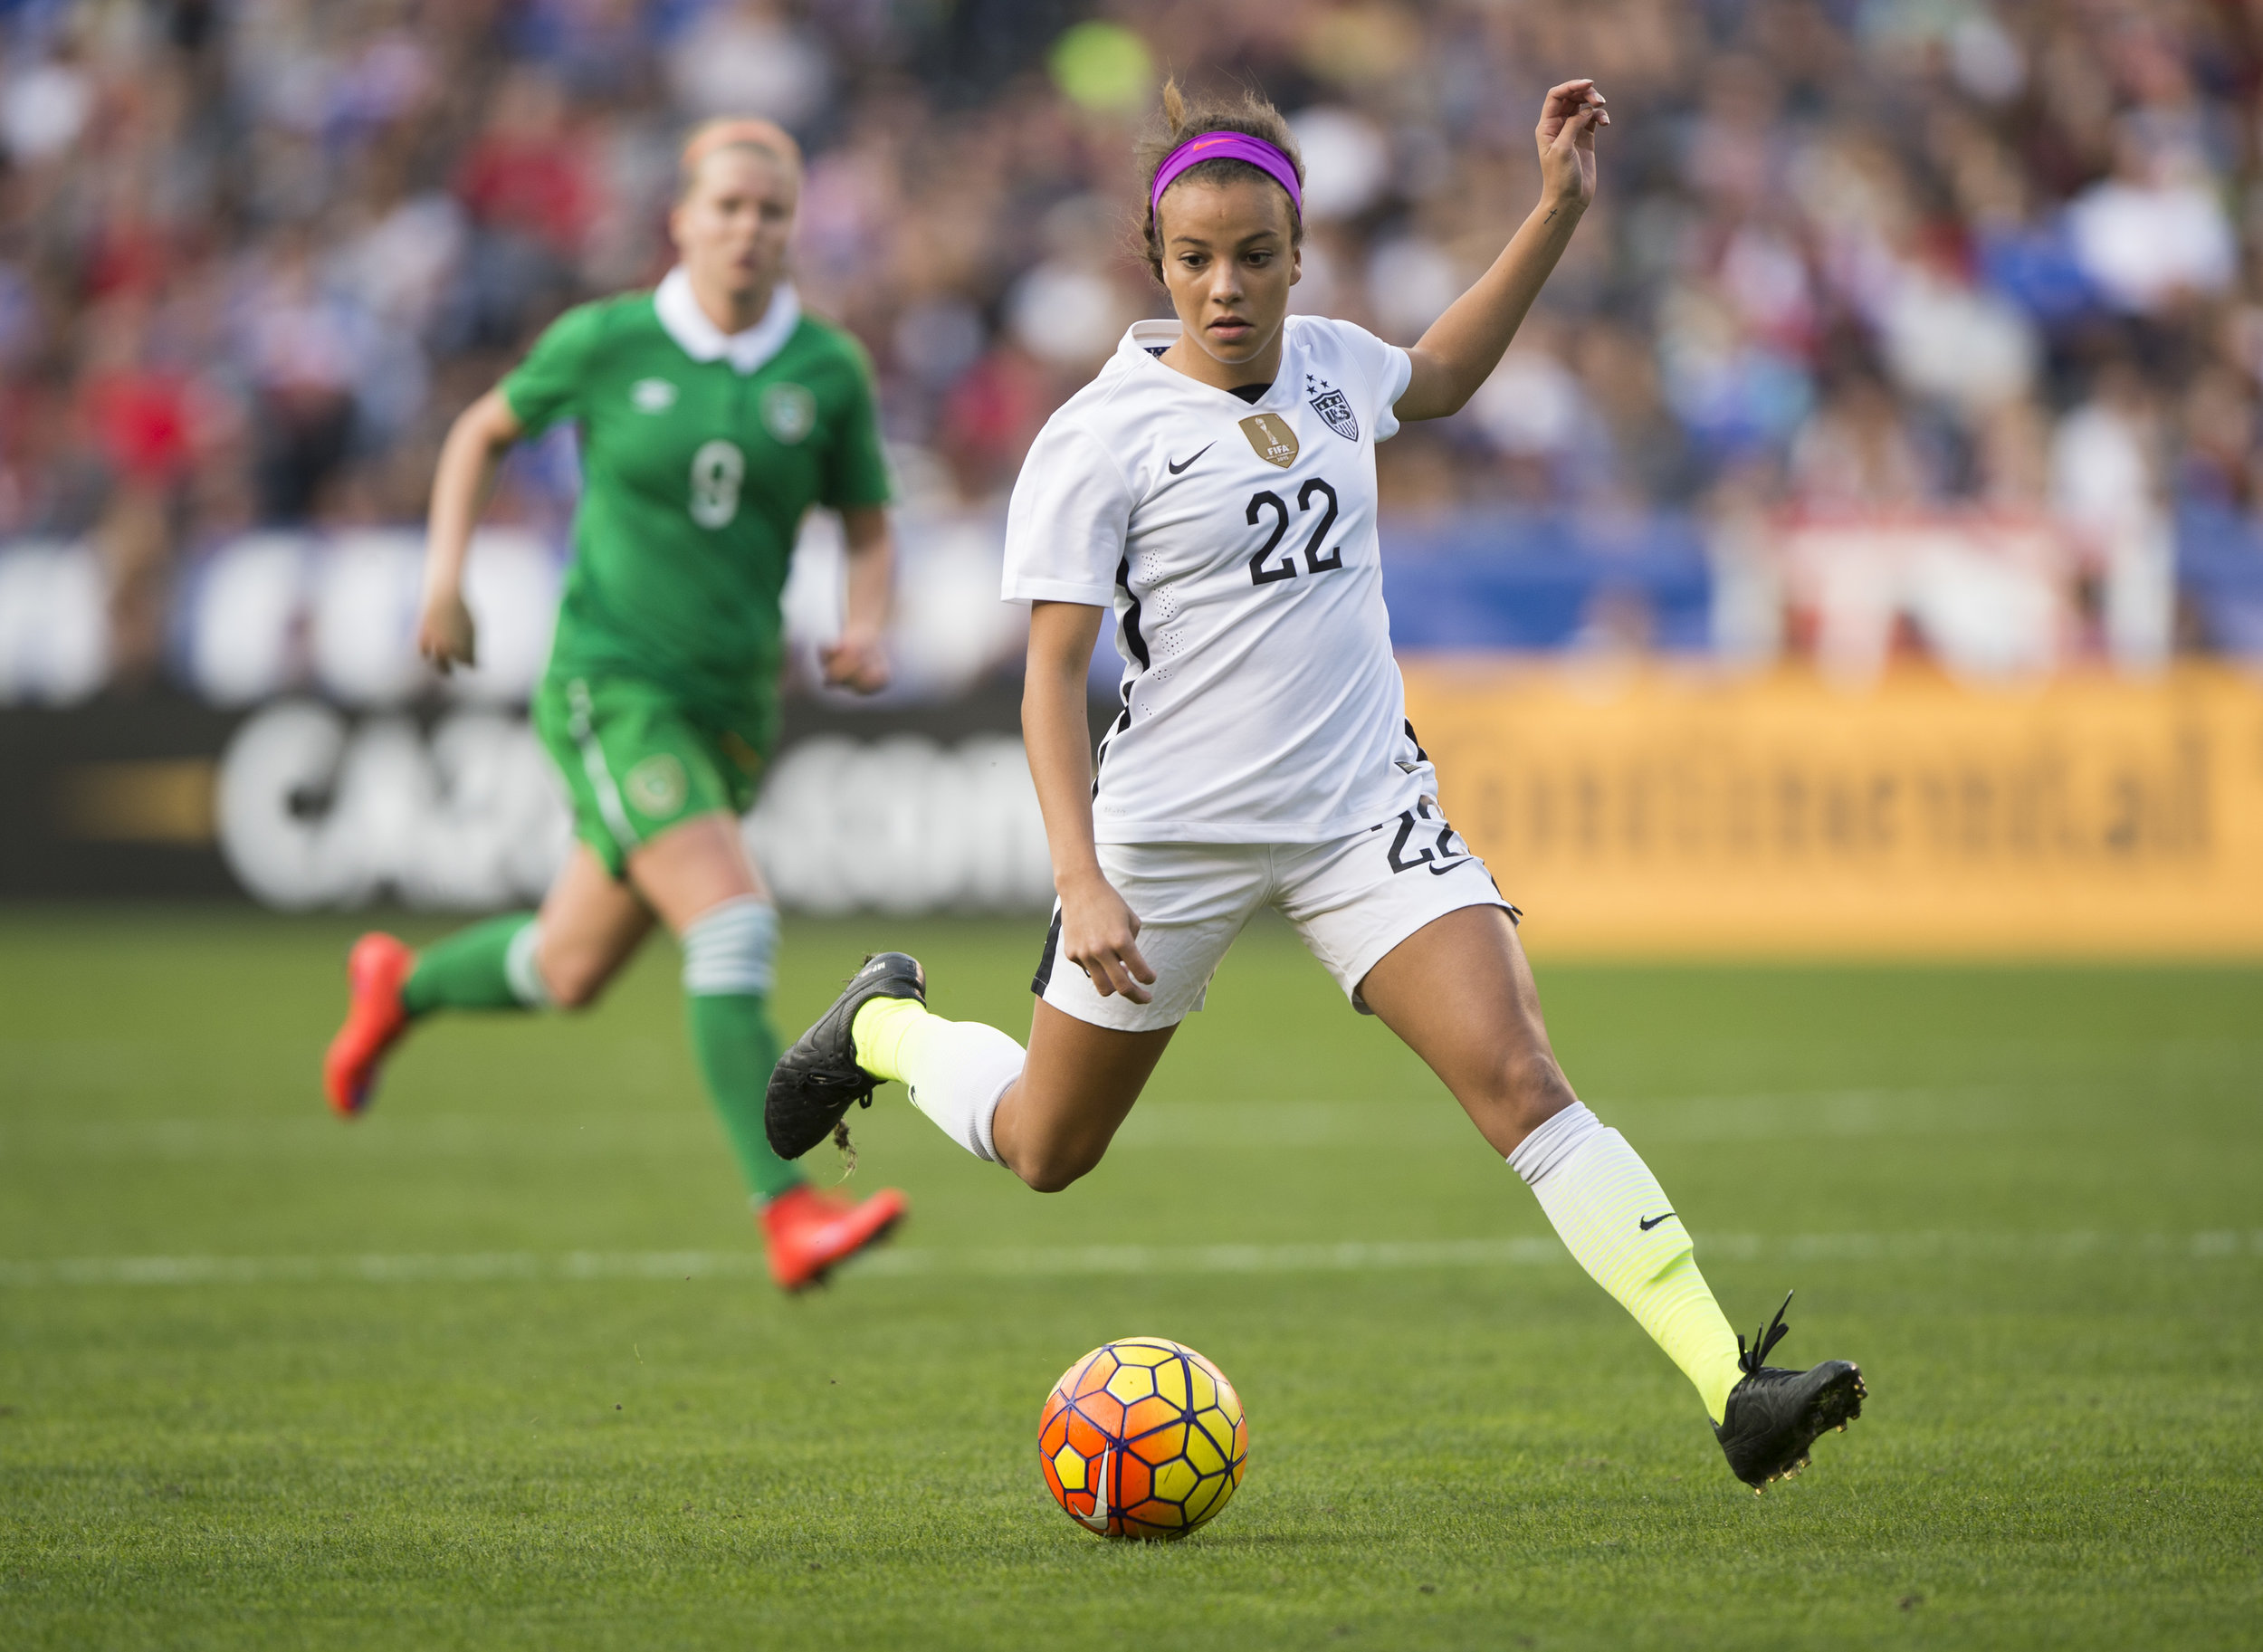 Mallory Pugh - San Diego, CA  January 23, 2016: The USWNT defeated Ireland 5-0 during an international friendly at Qualcomm Stadium. Photo by Brad Smith.